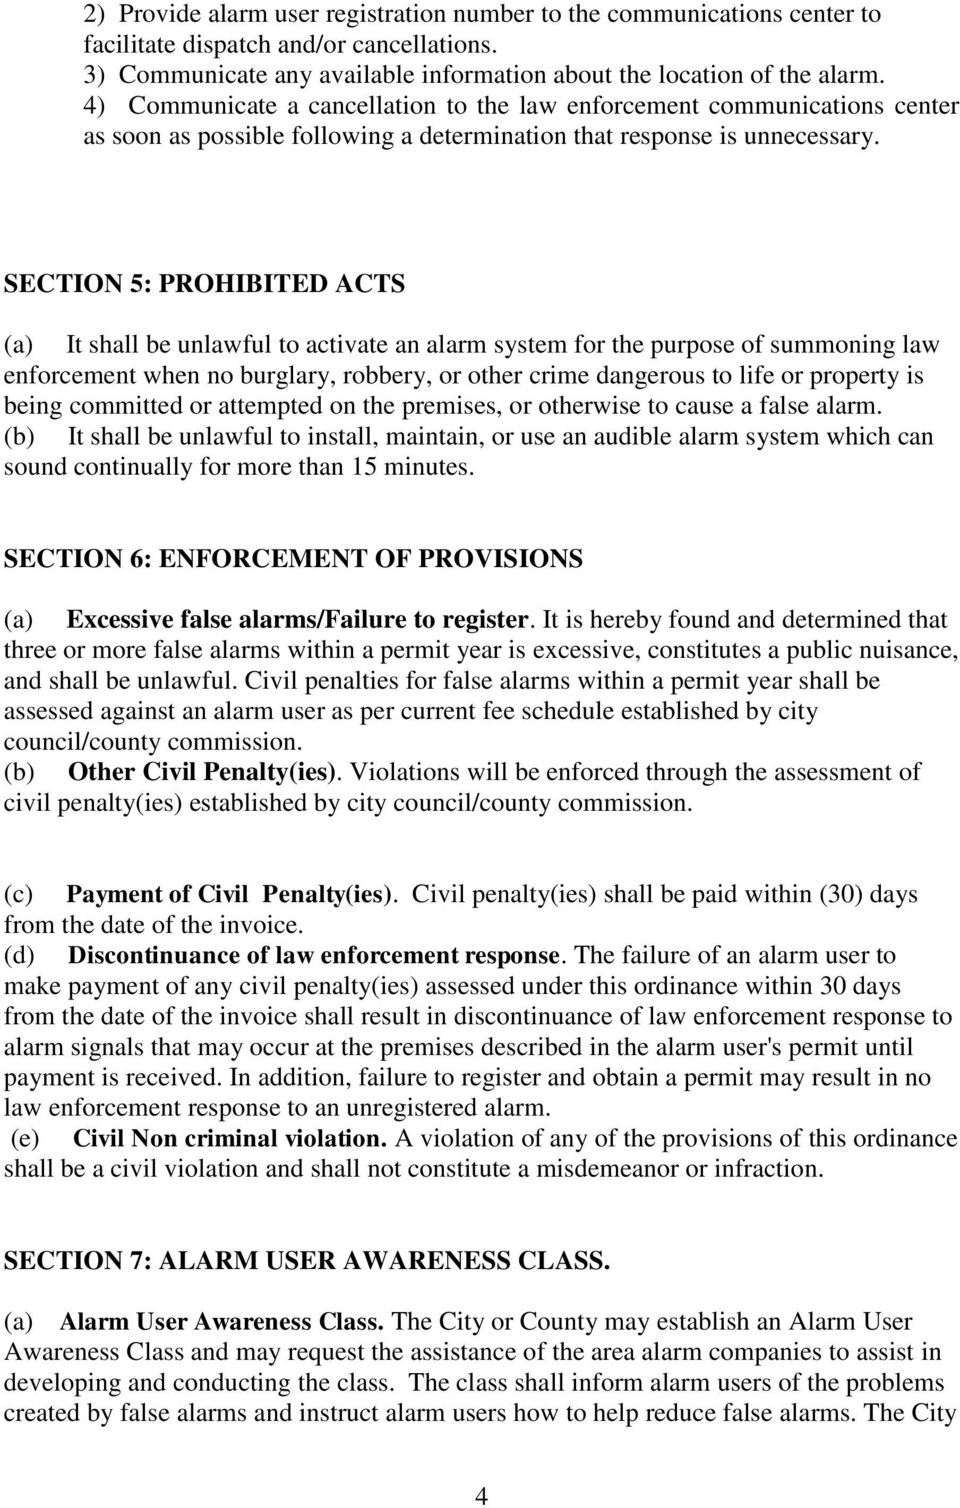 SECTION 5: PROHIBITED ACTS (a) It shall be unlawful to activate an alarm system for the purpose of summoning law enforcement when no burglary, robbery, or other crime dangerous to life or property is